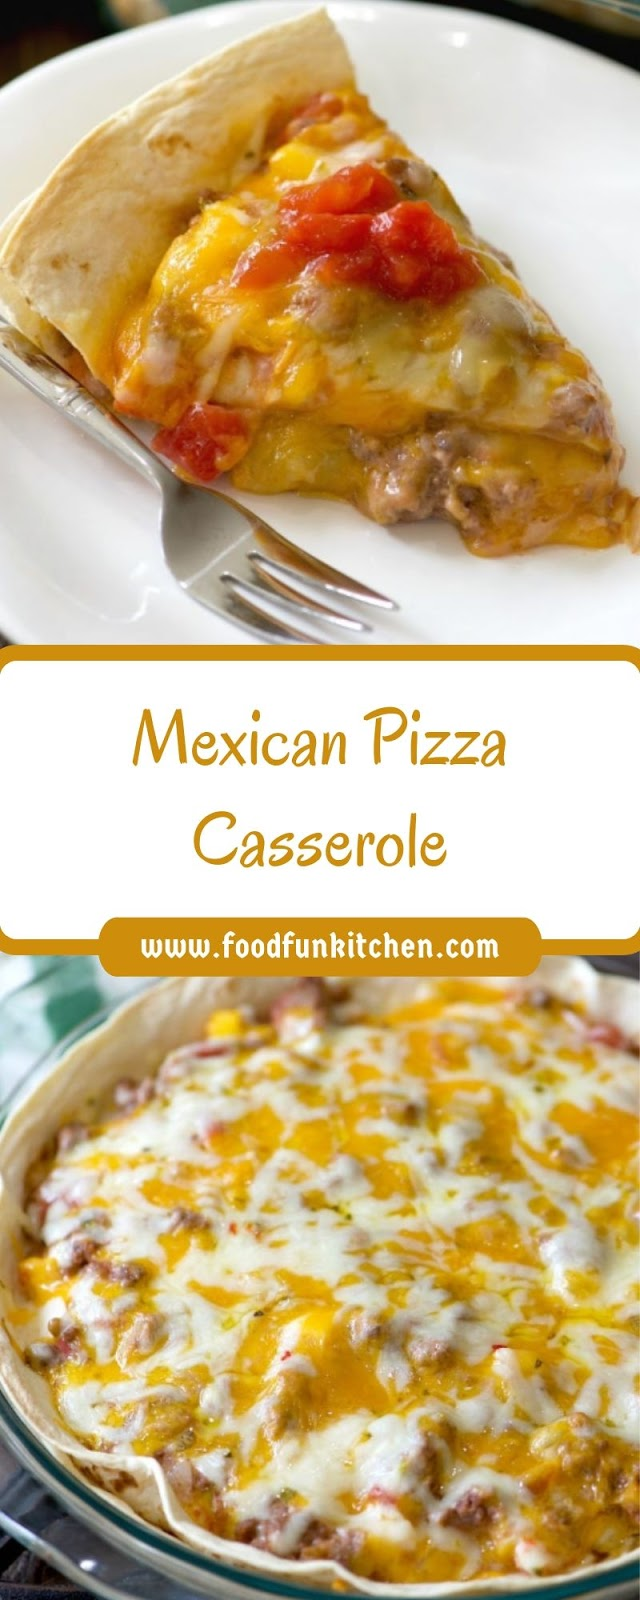 Mexican Pizza Casserole